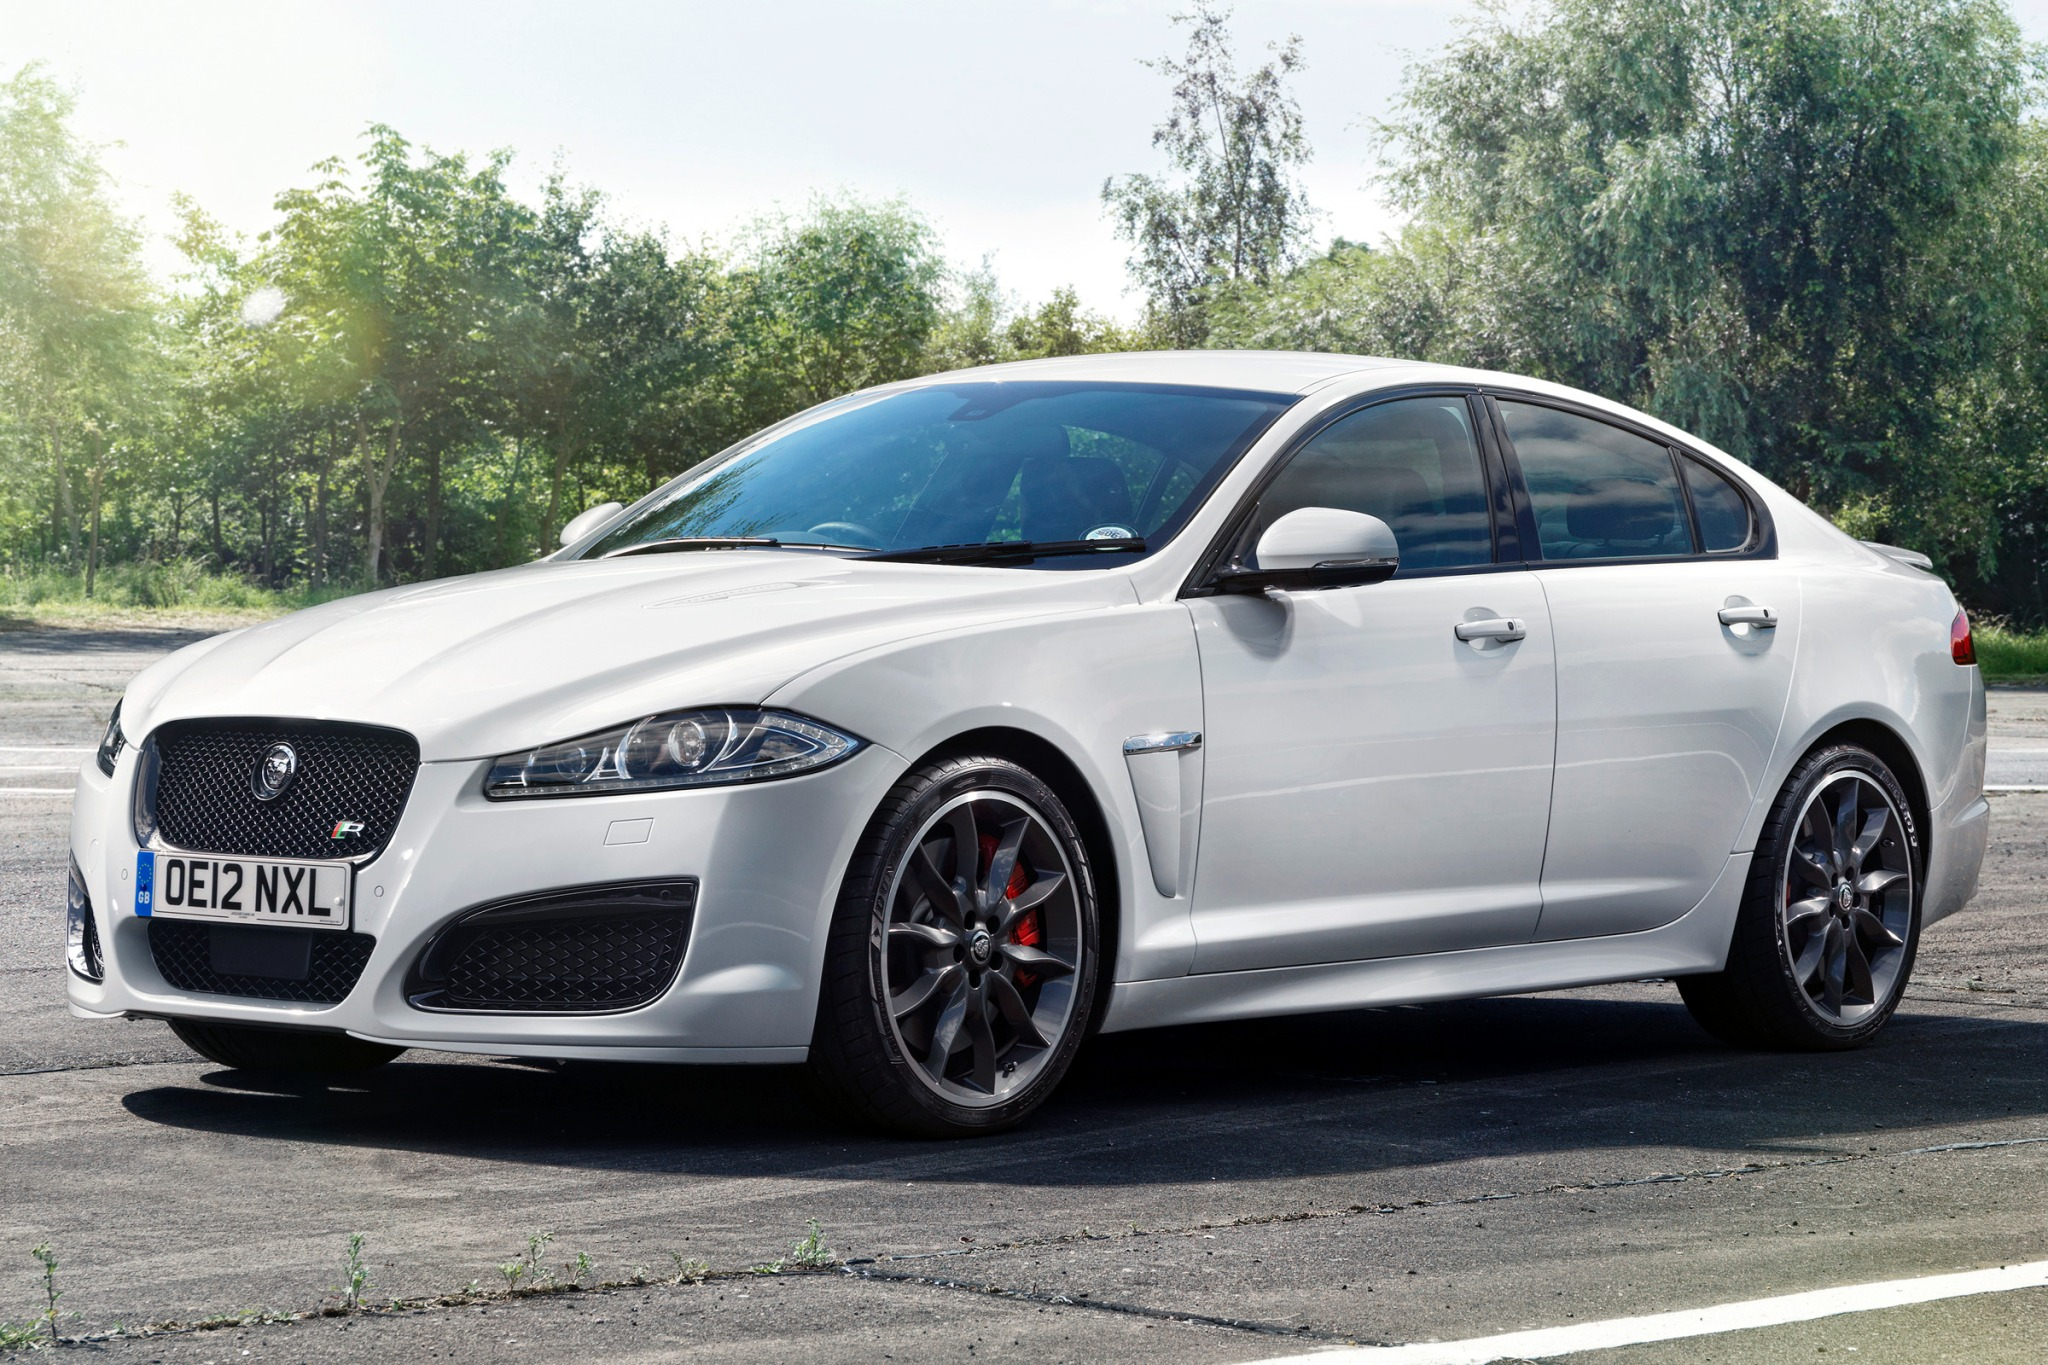 2014 Jaguar XF Sedan Inte interior #3